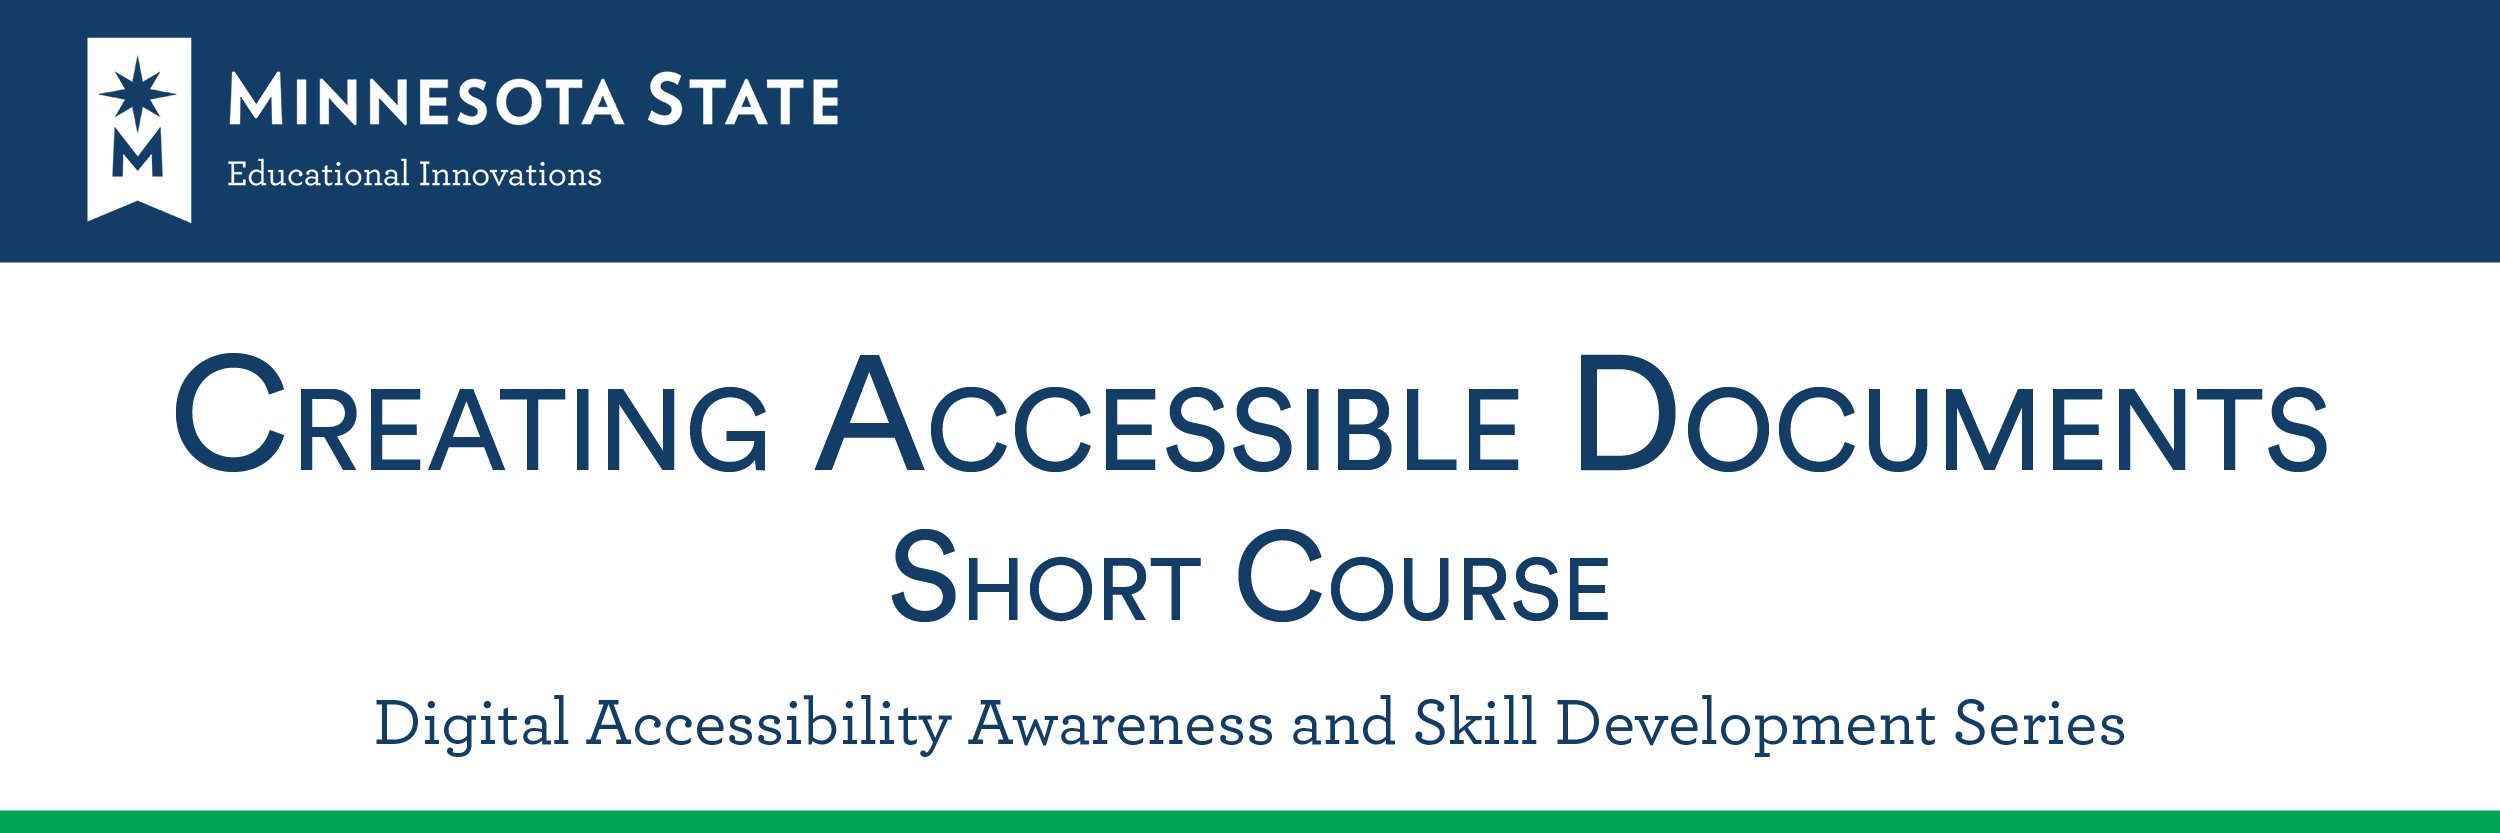 Accessibility Short Course - creating accessible documents